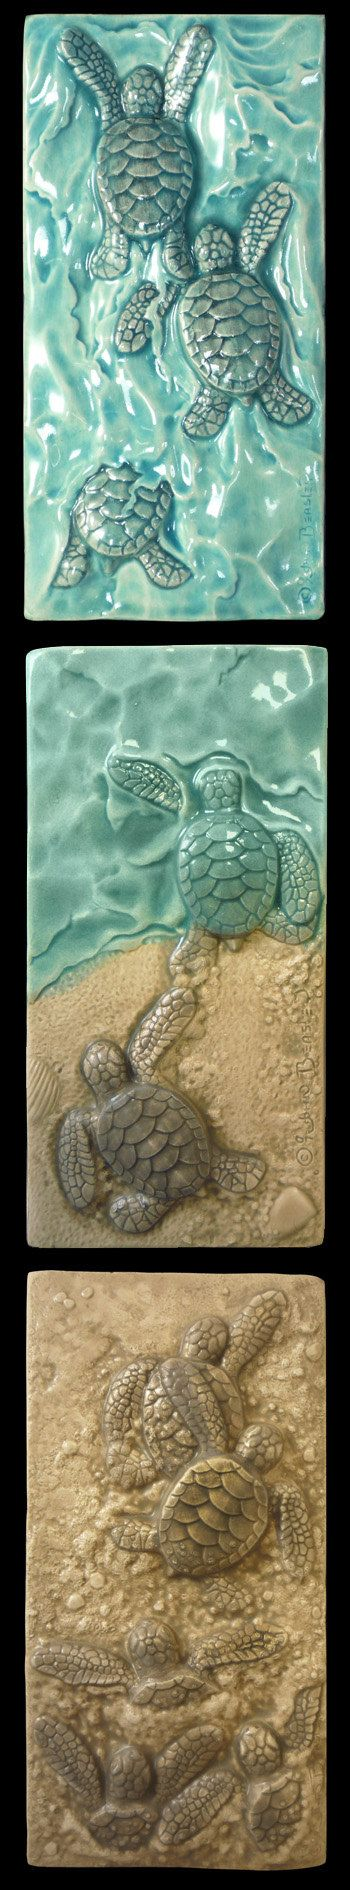 Art tile, art tiles, Ceramic, Baby sea turtle triptych